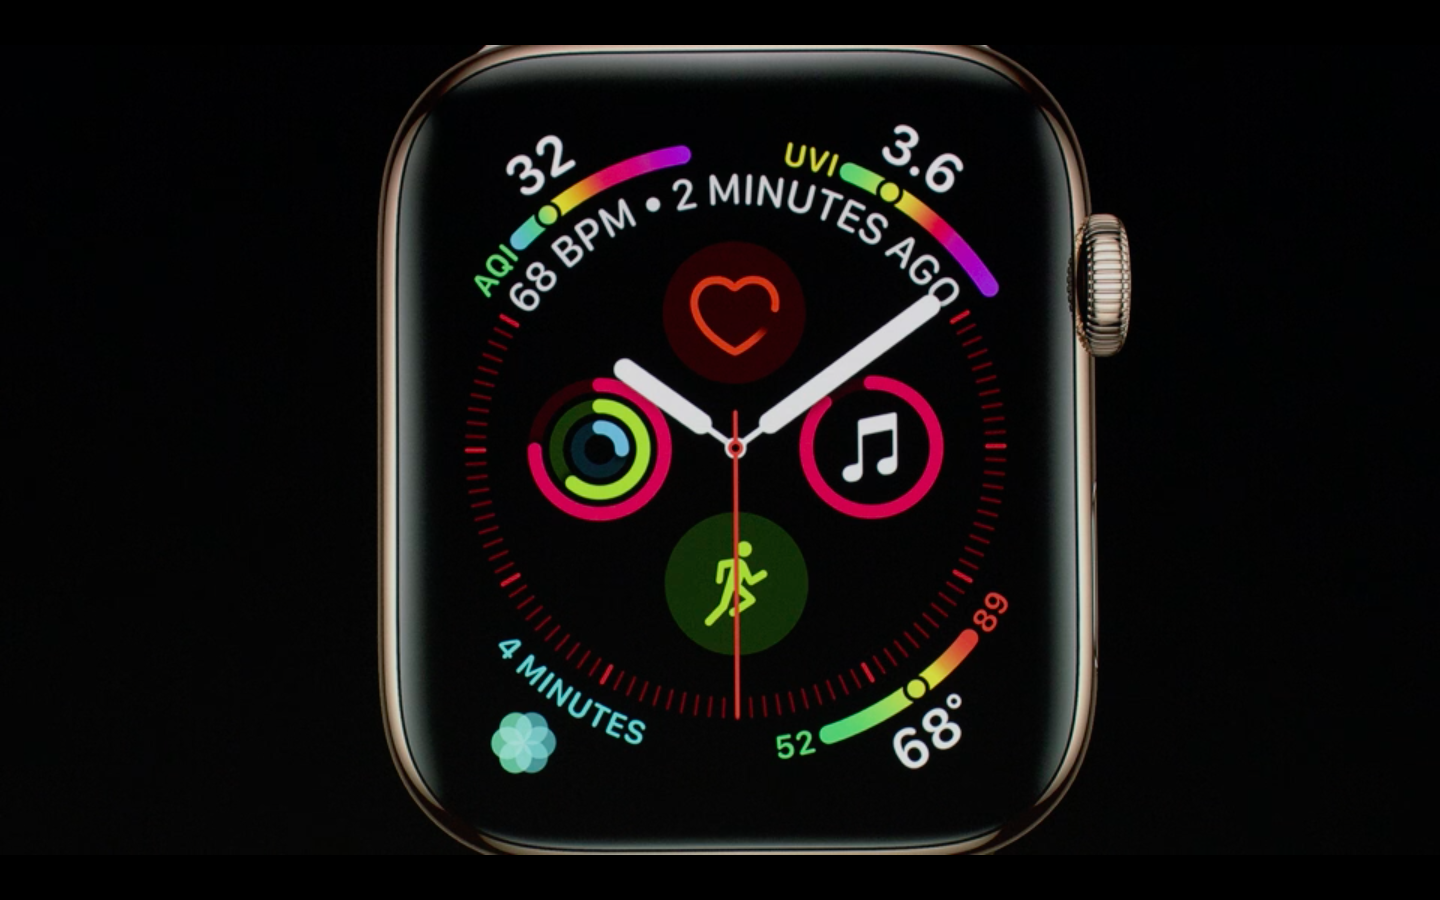 Apple Watch Series 4 Has 20 Lower Battery Capacity Than